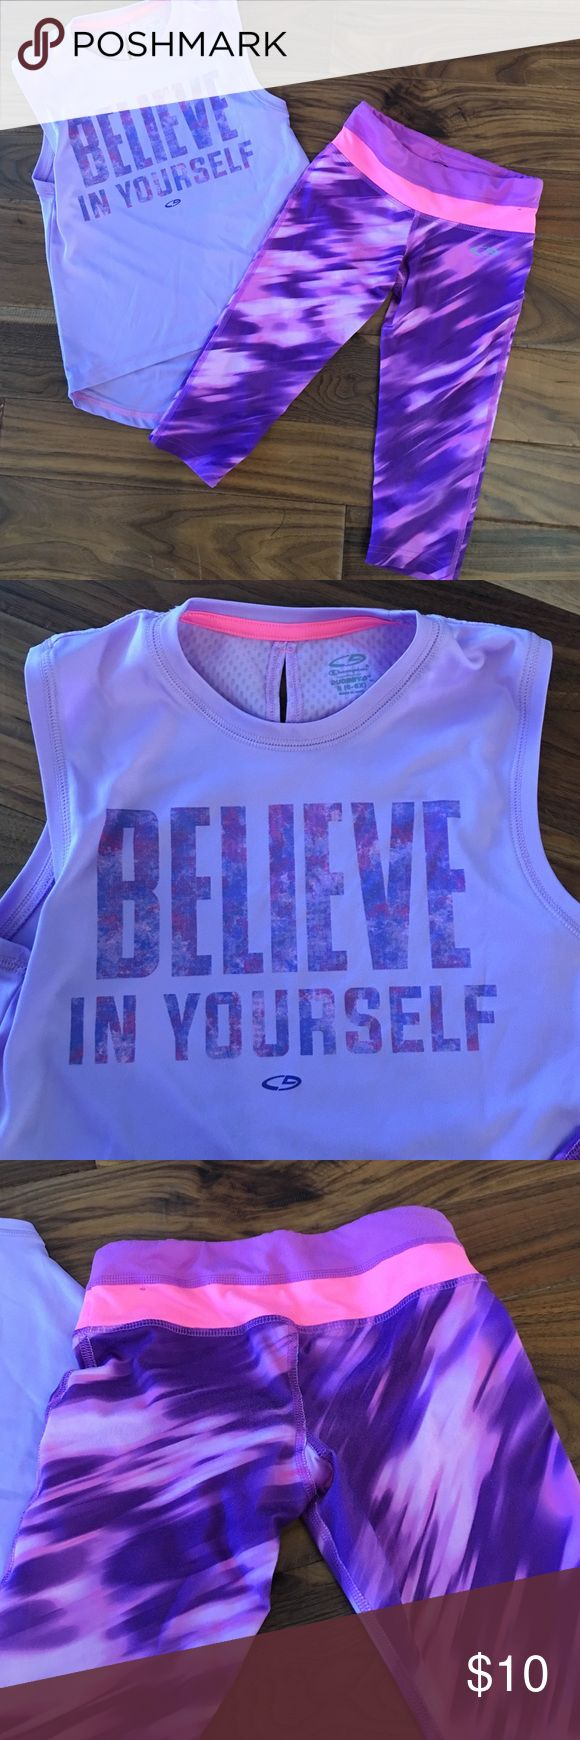 Child's active outfit Champion brand purple active outfit size 6x. champion  Matching Sets